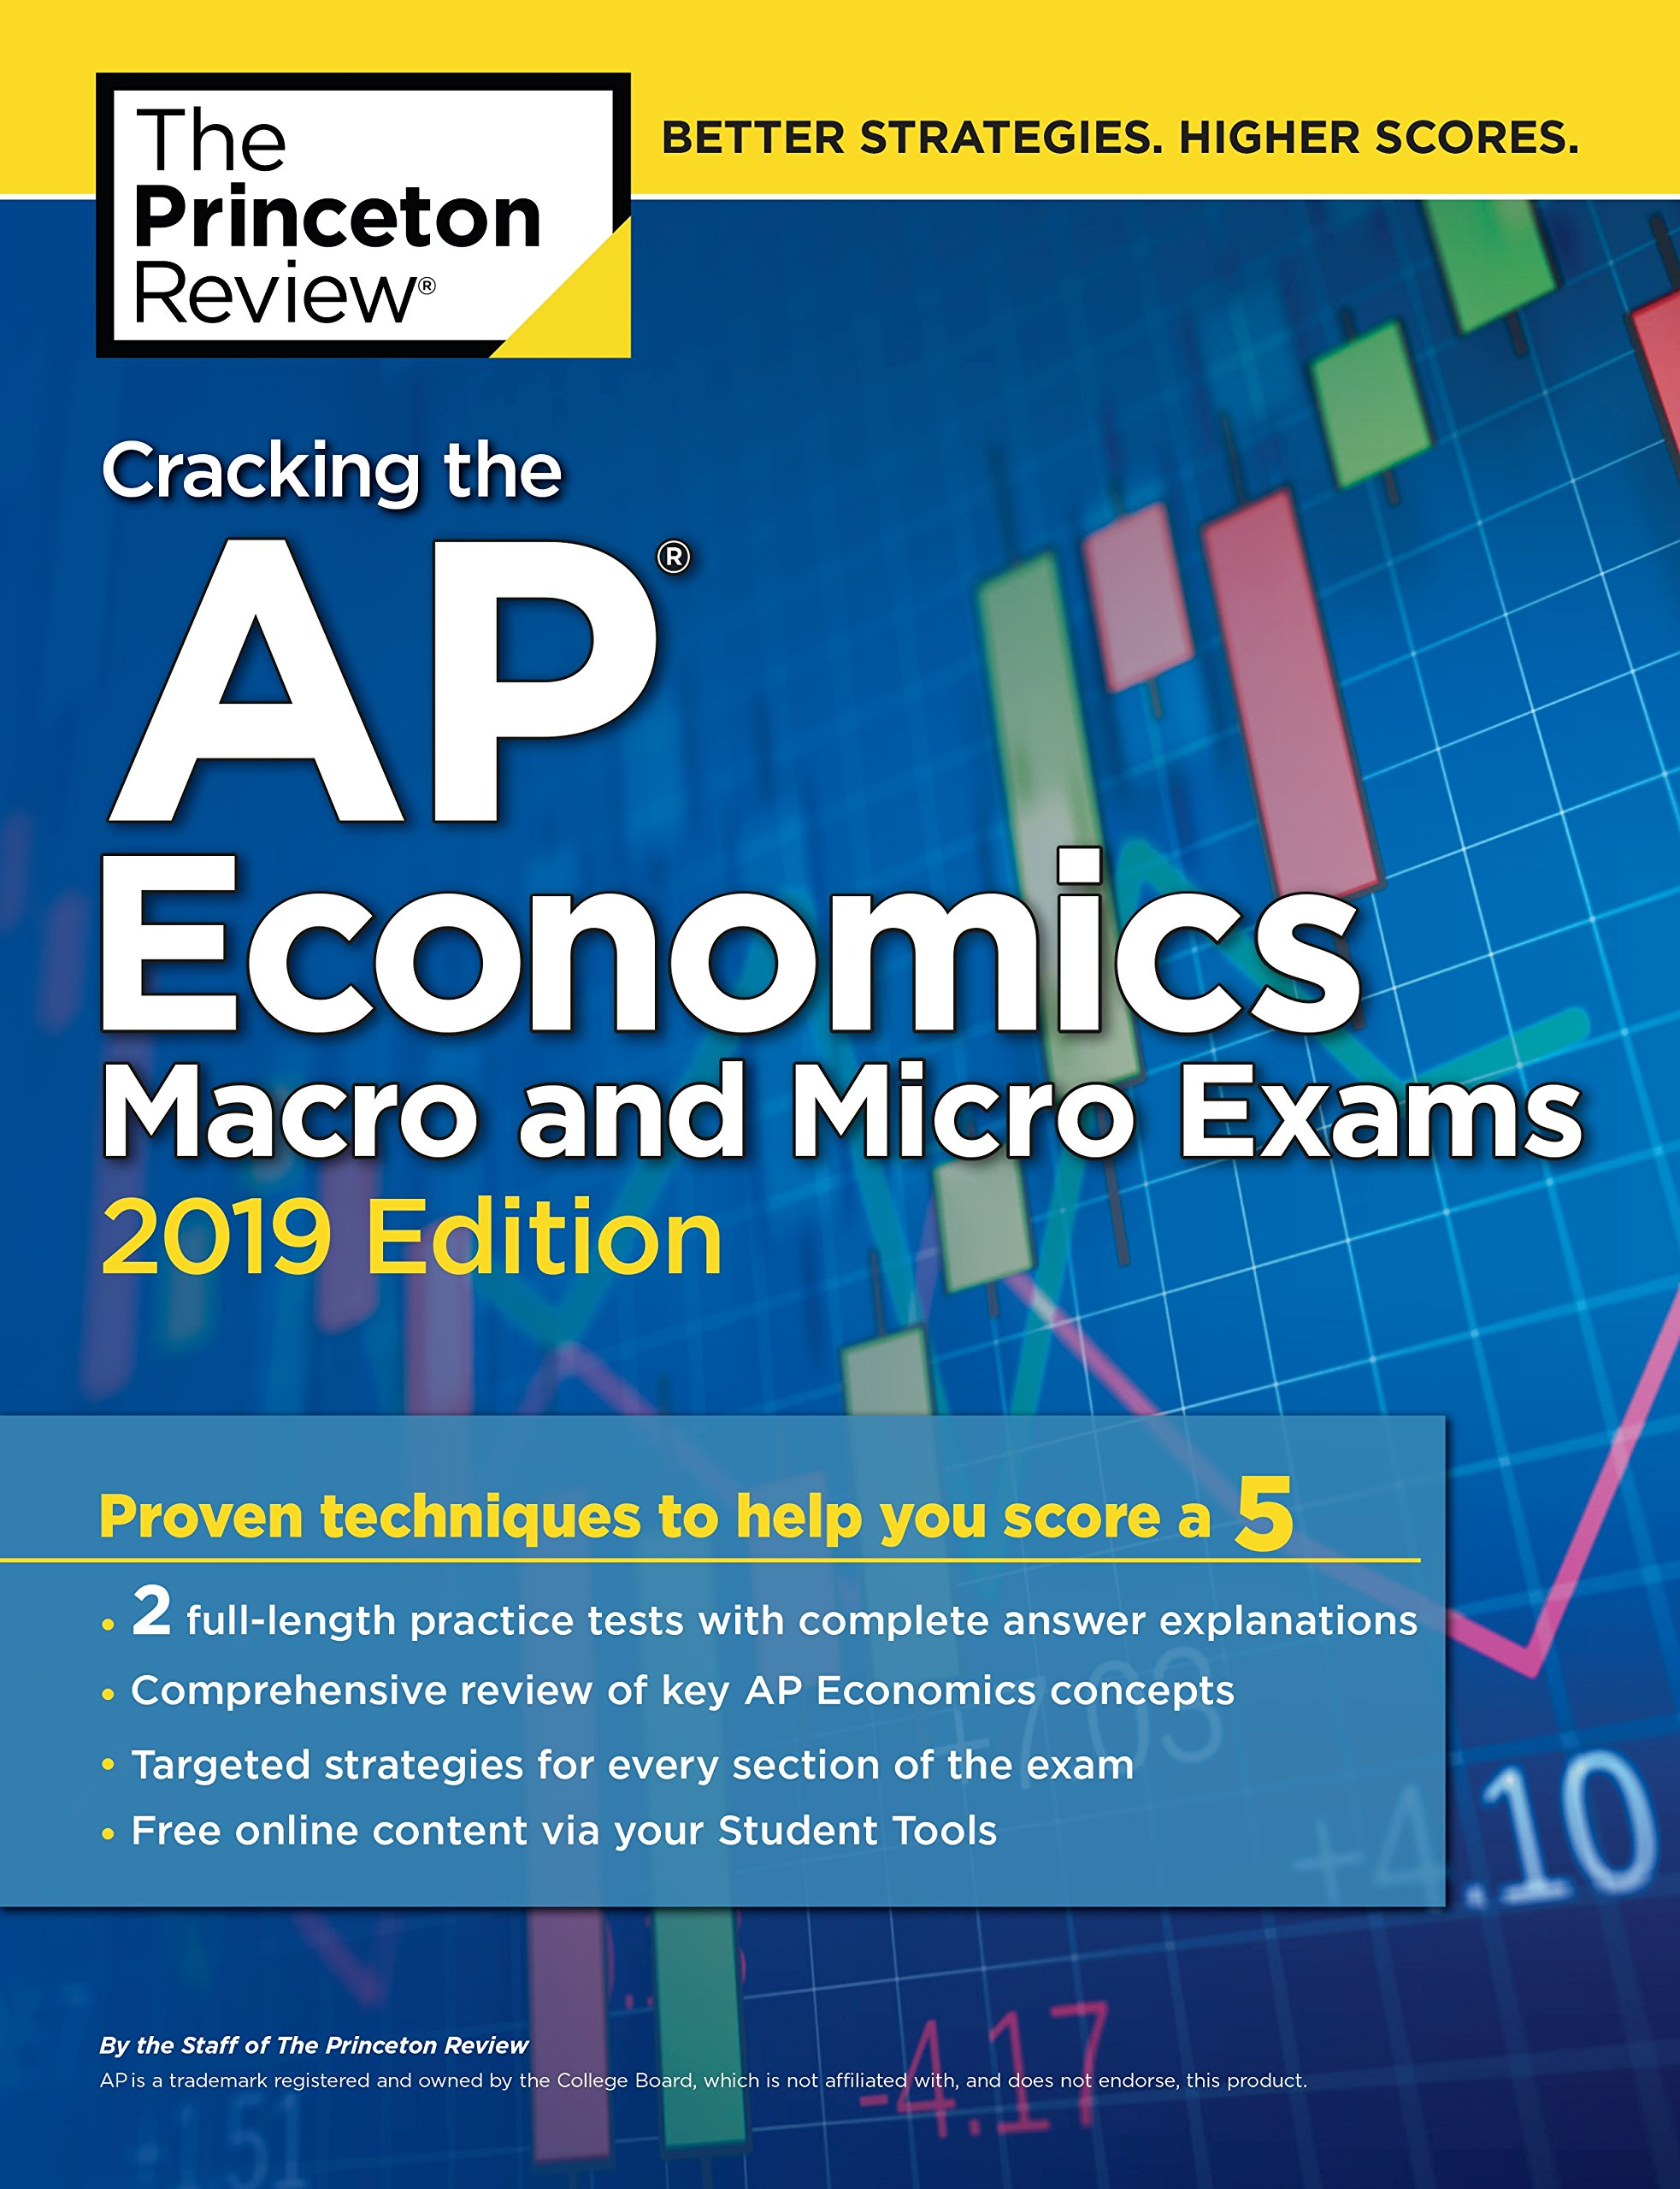 Cracking the AP Economics Macro & Micro Exams, 2019 Edition: Practice Tests & Proven Techniques to Help You Score a 5 (College Test Preparation) by Princeton Review (Image #2)